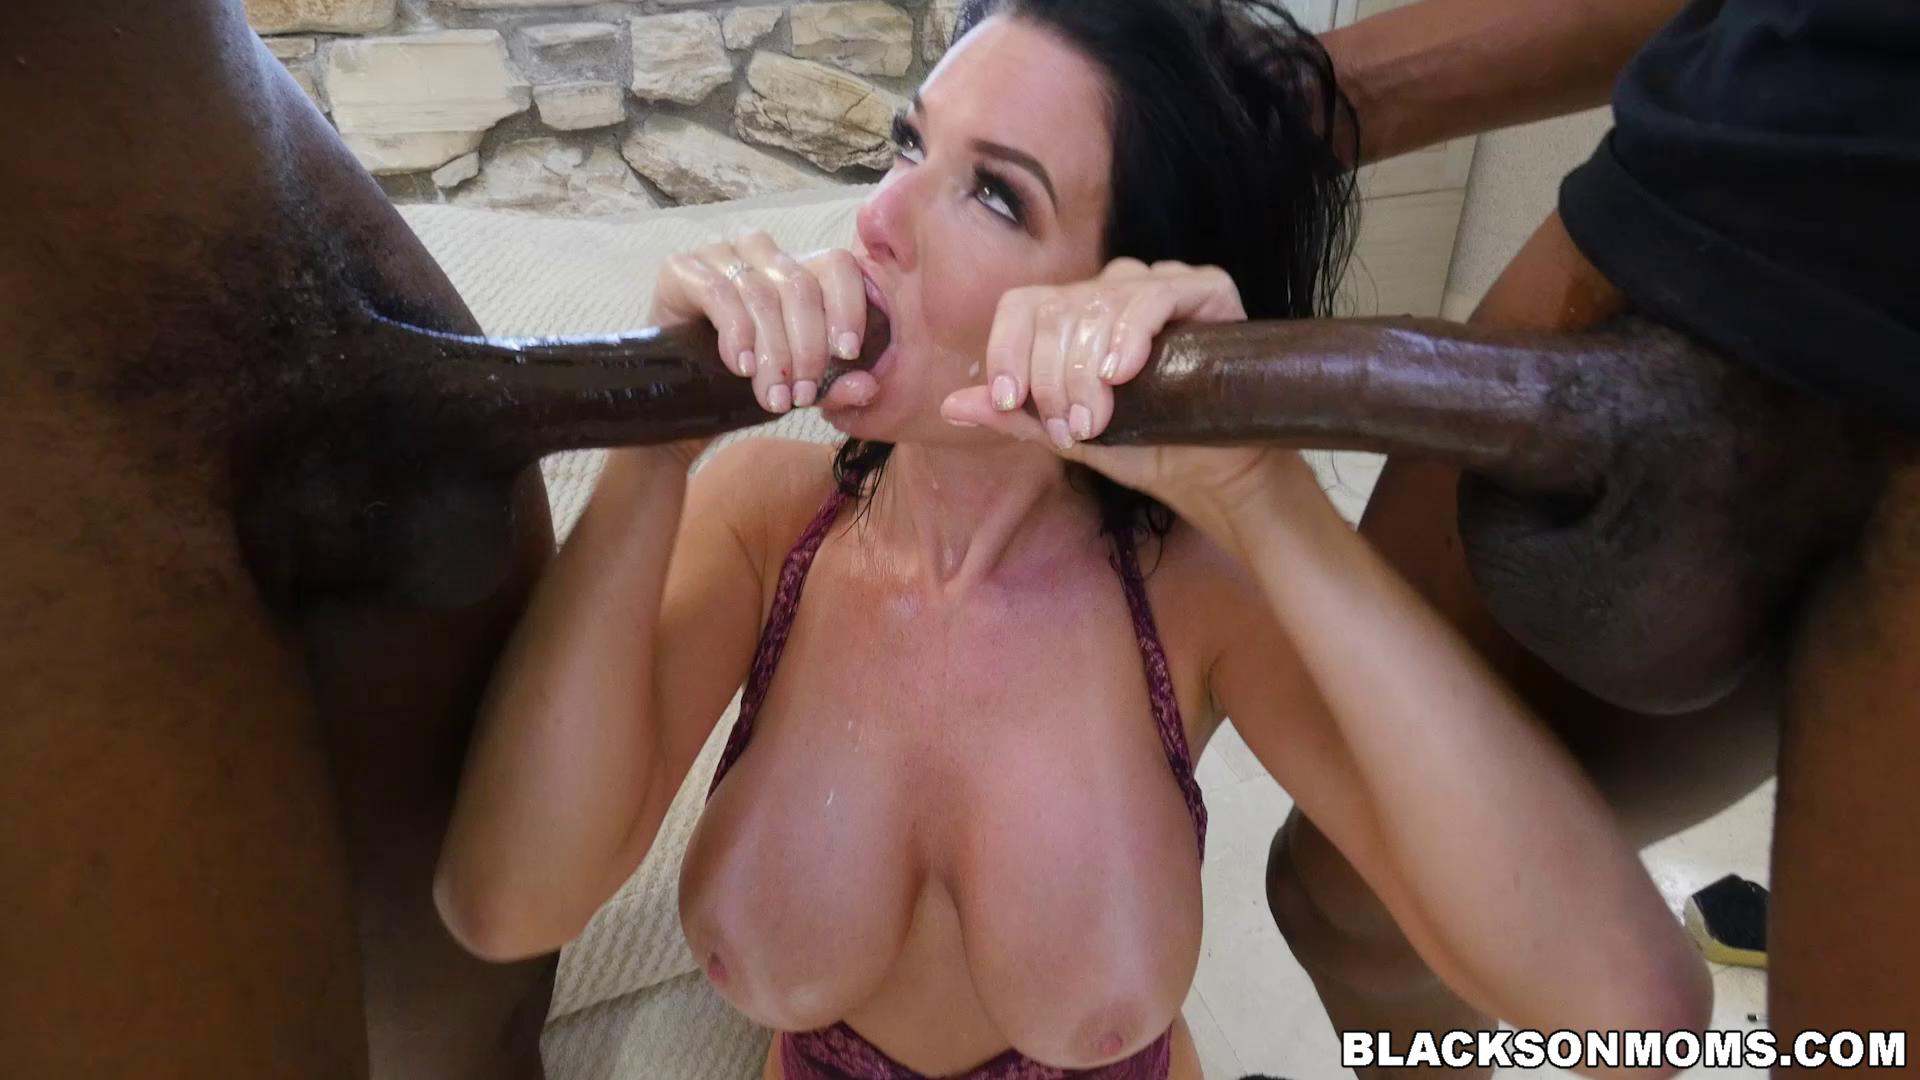 BlacksOnMoms – Veronica Avluv